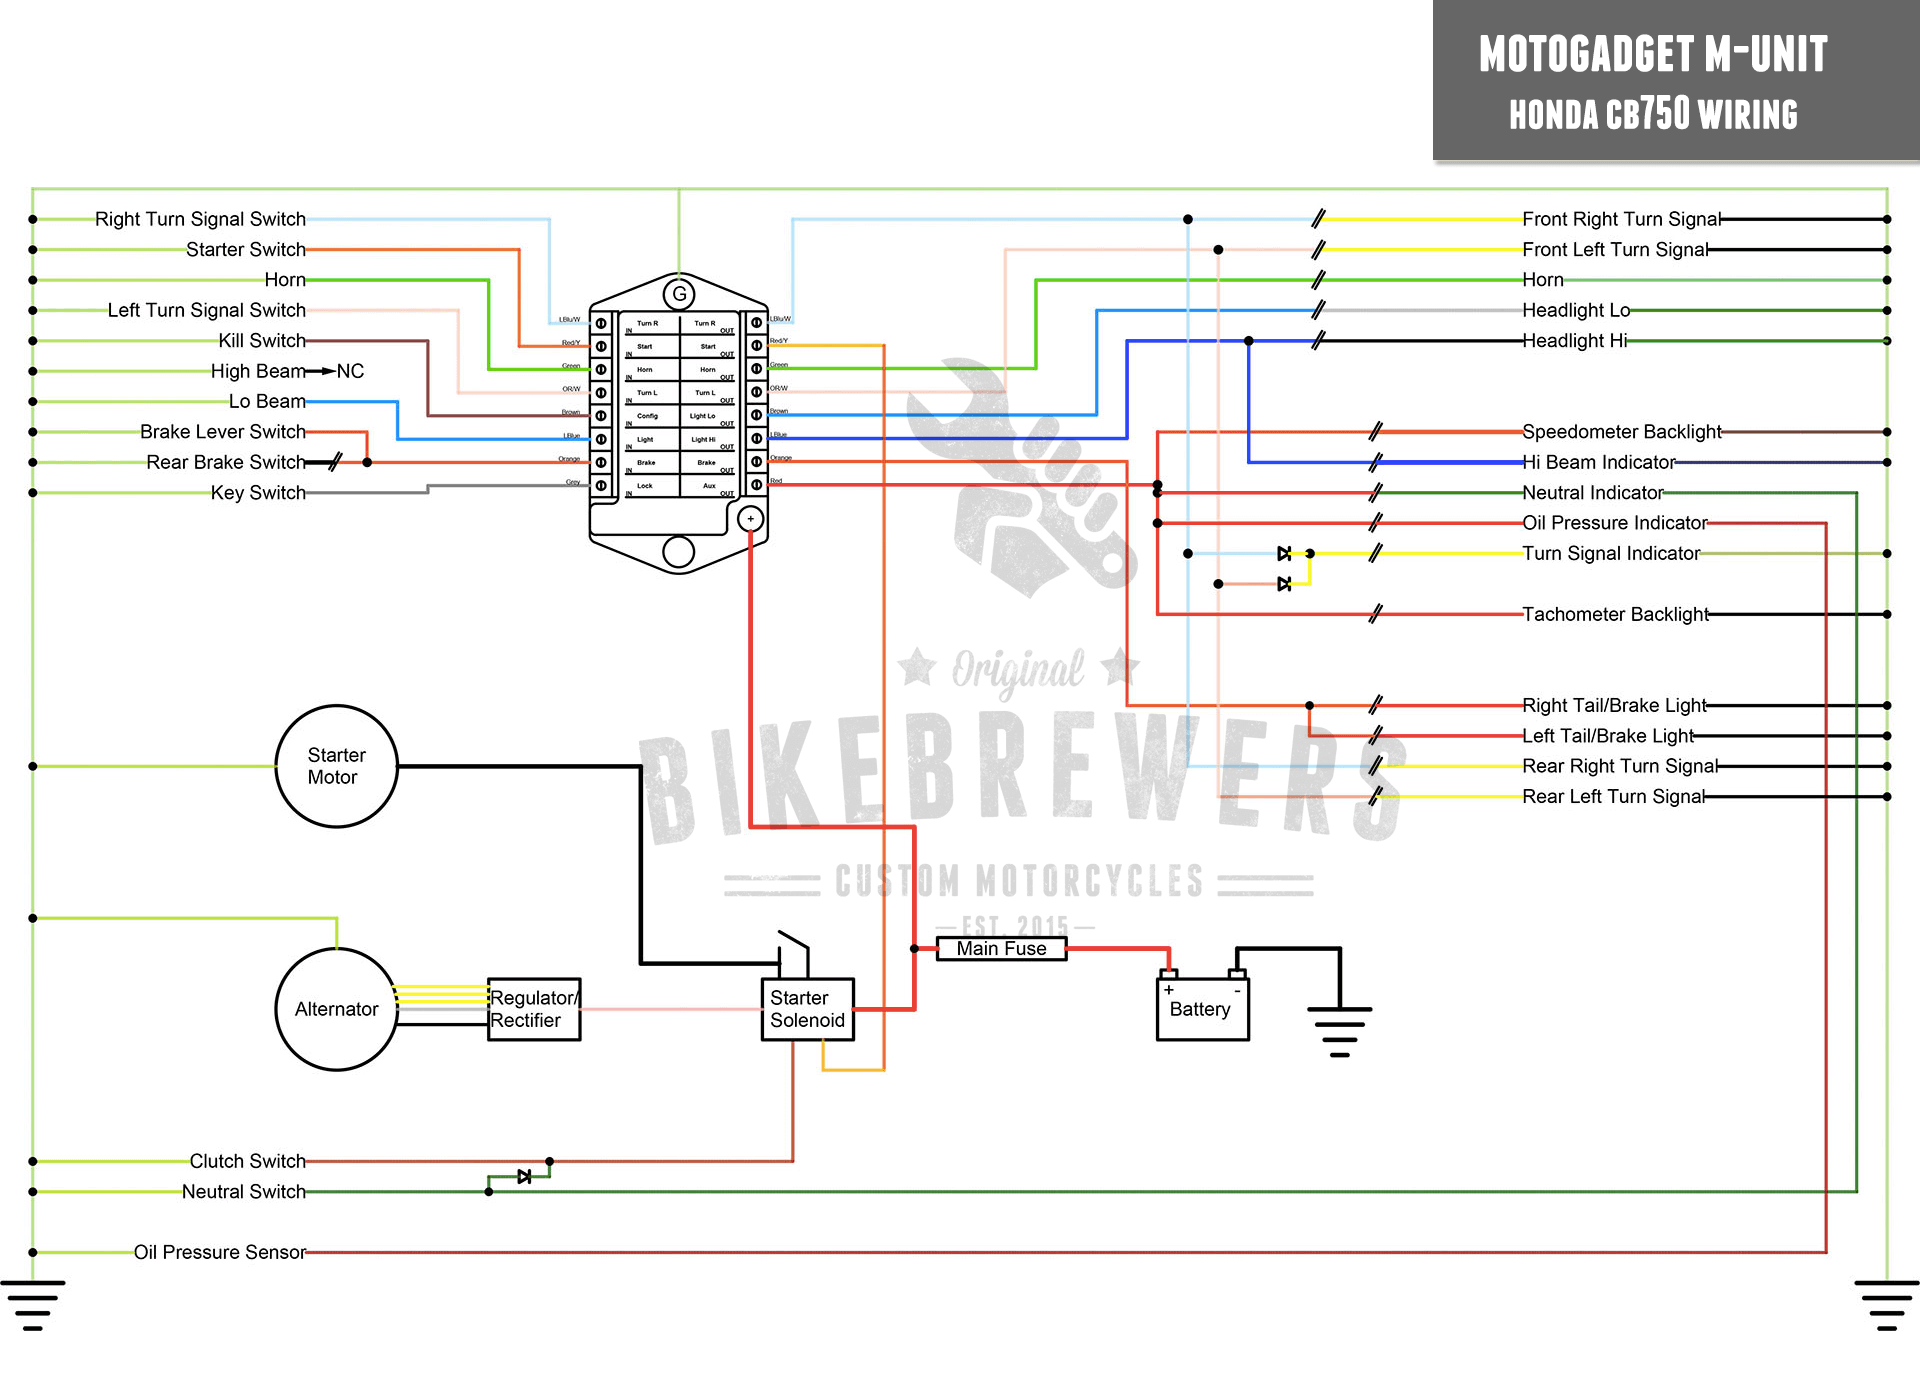 Bobber Wiring Diagram For Mag harley dual fire coil wiring ... on